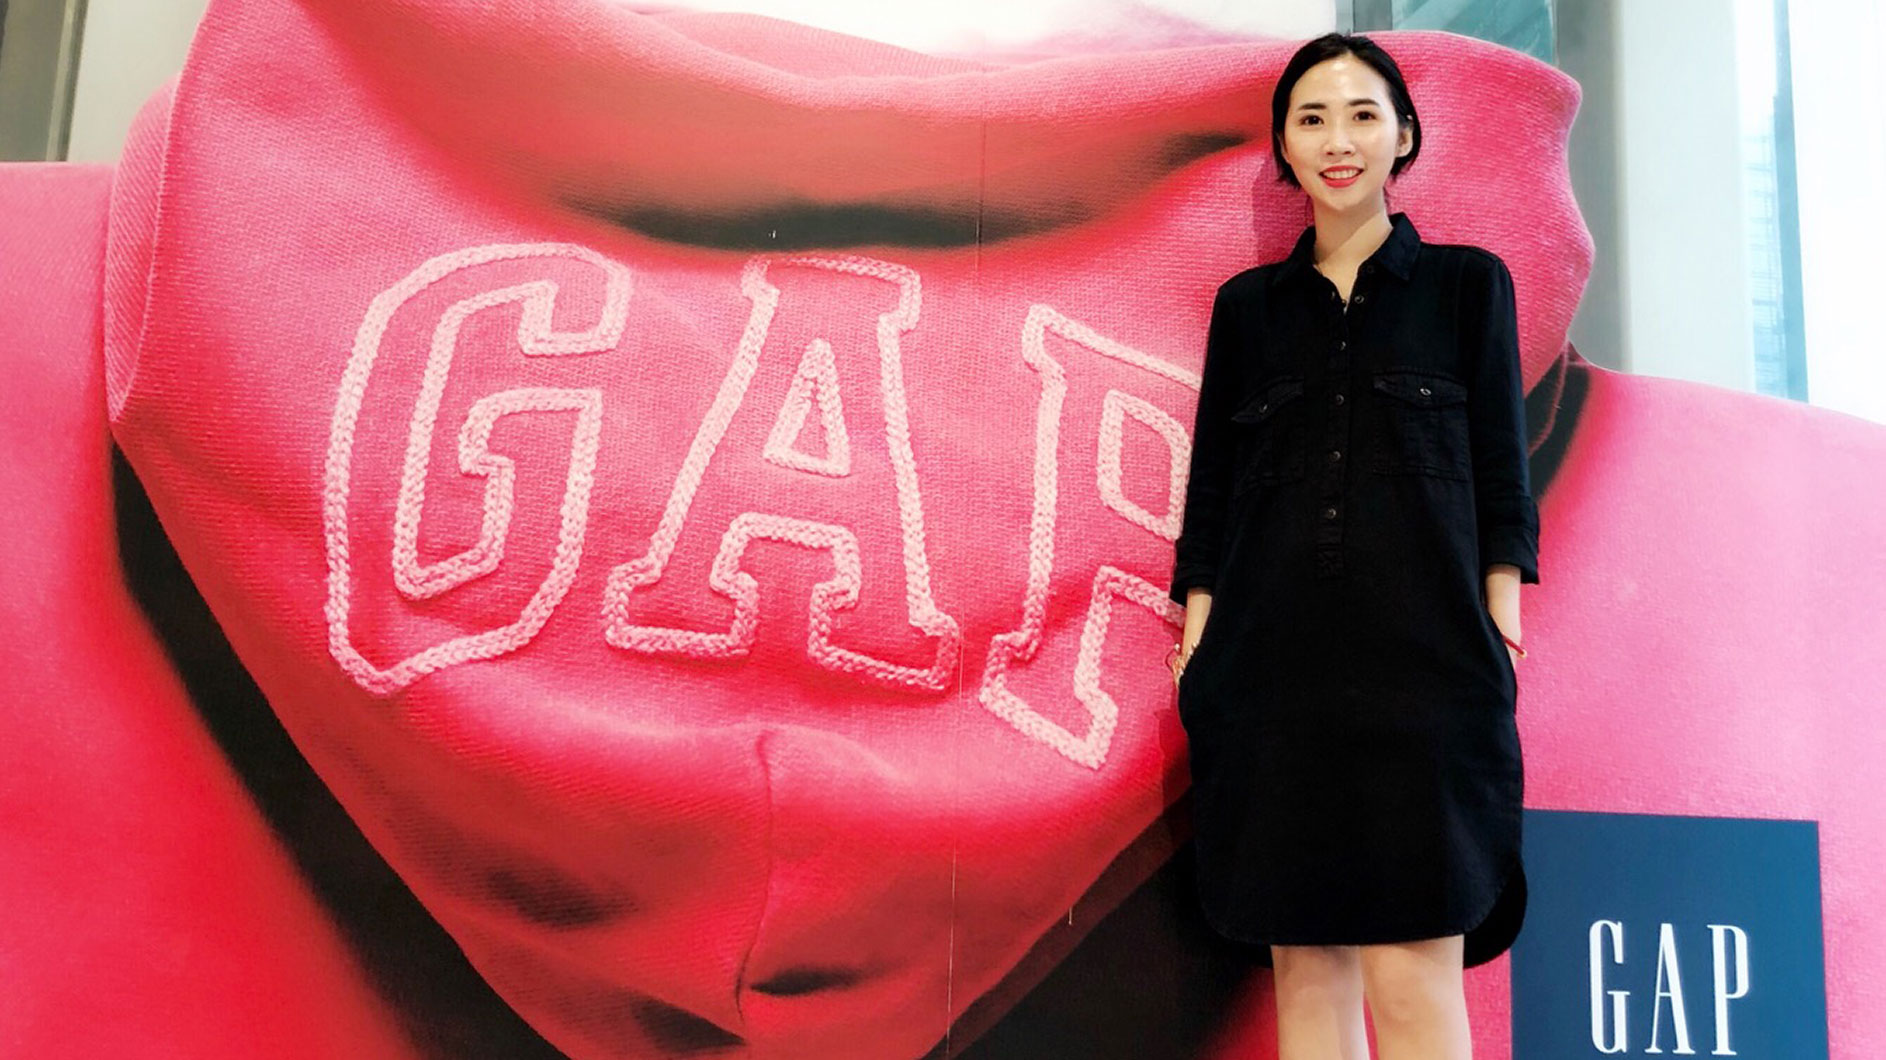 Constance Smiling in Front of Gap Logo